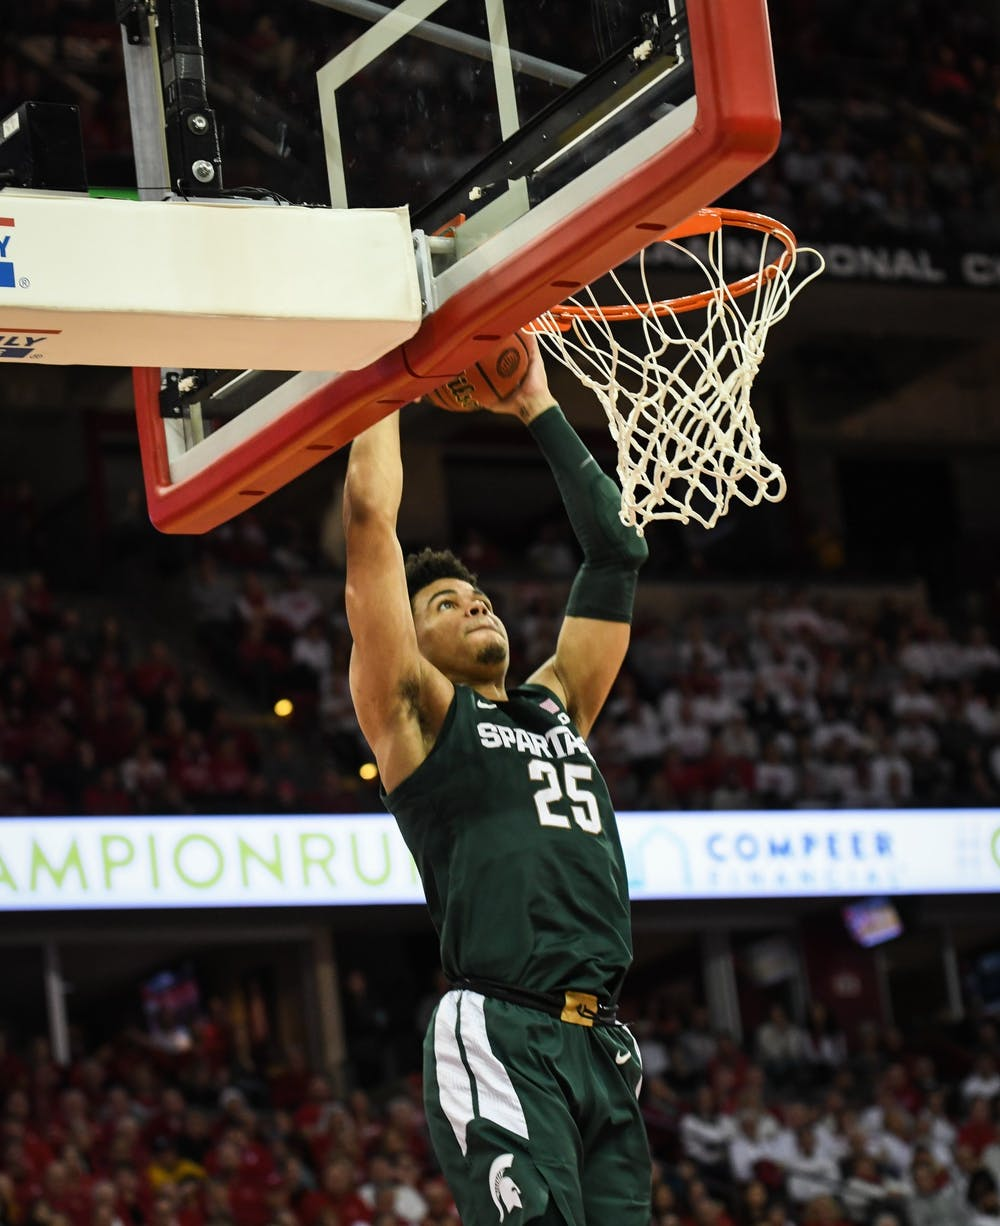 <p>Freshman forward Malik Hall (25) goes up for a dunk during the men&#x27;s basketball game against Wisconsin at the Kohl Center in Madison, Wisconsin on February 1, 2020. The Spartans fell to the Badgers 63-64.</p>